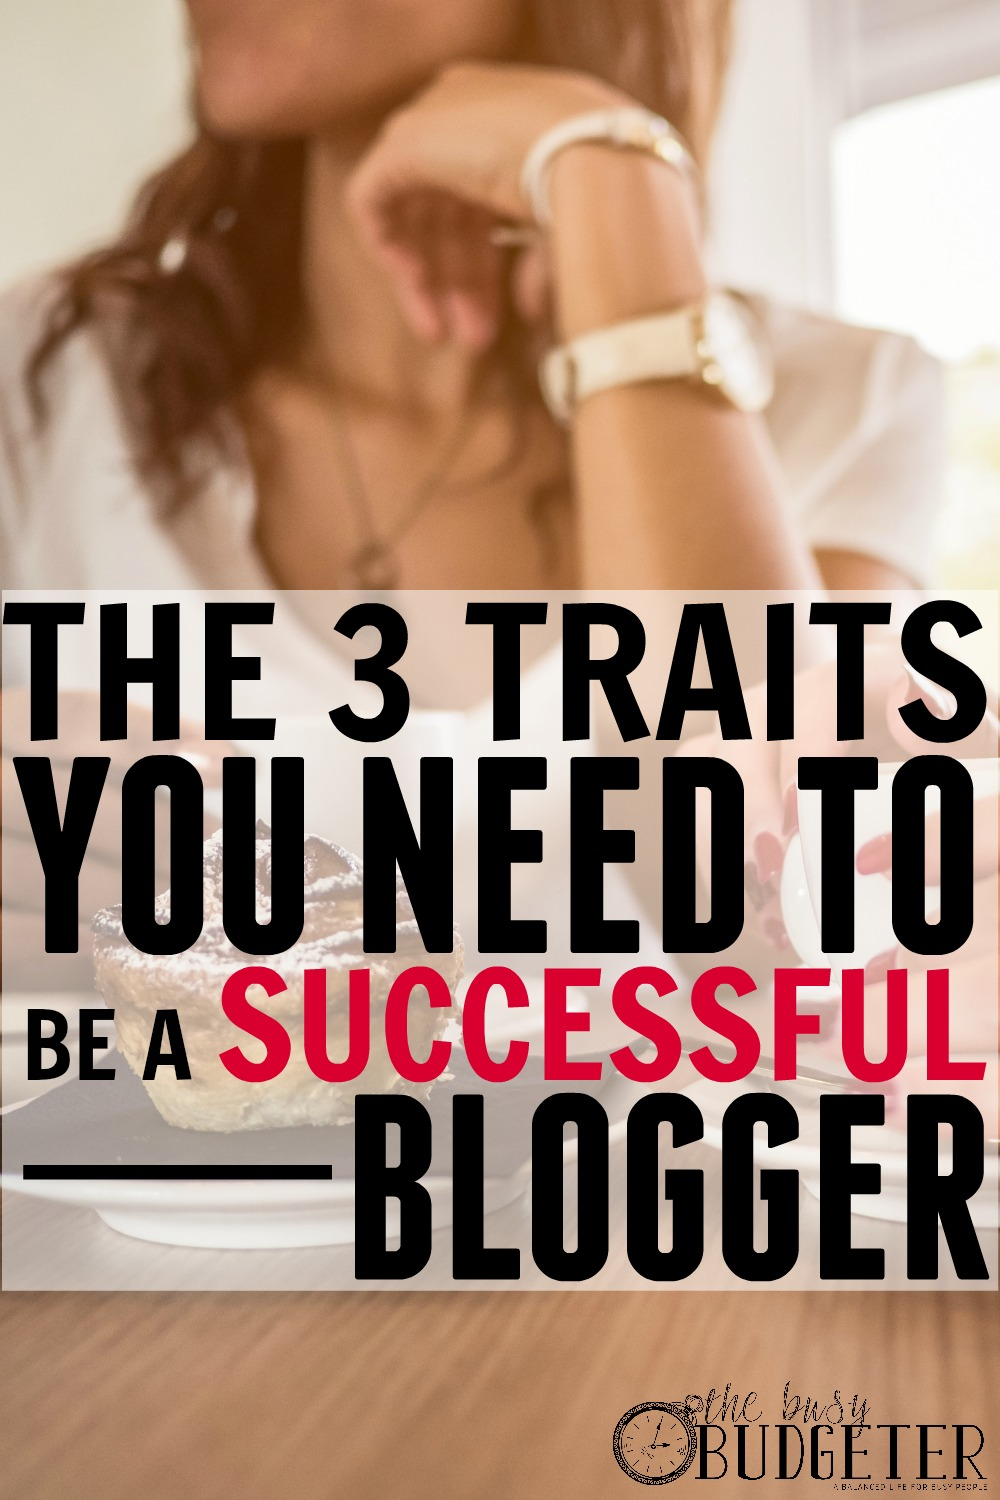 The Three Traits You Need to be a Successful Blogger. LOVED THIS! Great read and at least 3 of my favorite bloggers were represented. I'm blogging full-time too and couldn't agree more. Saving this to share with readers when they ask if anyone can make a living from blogging.